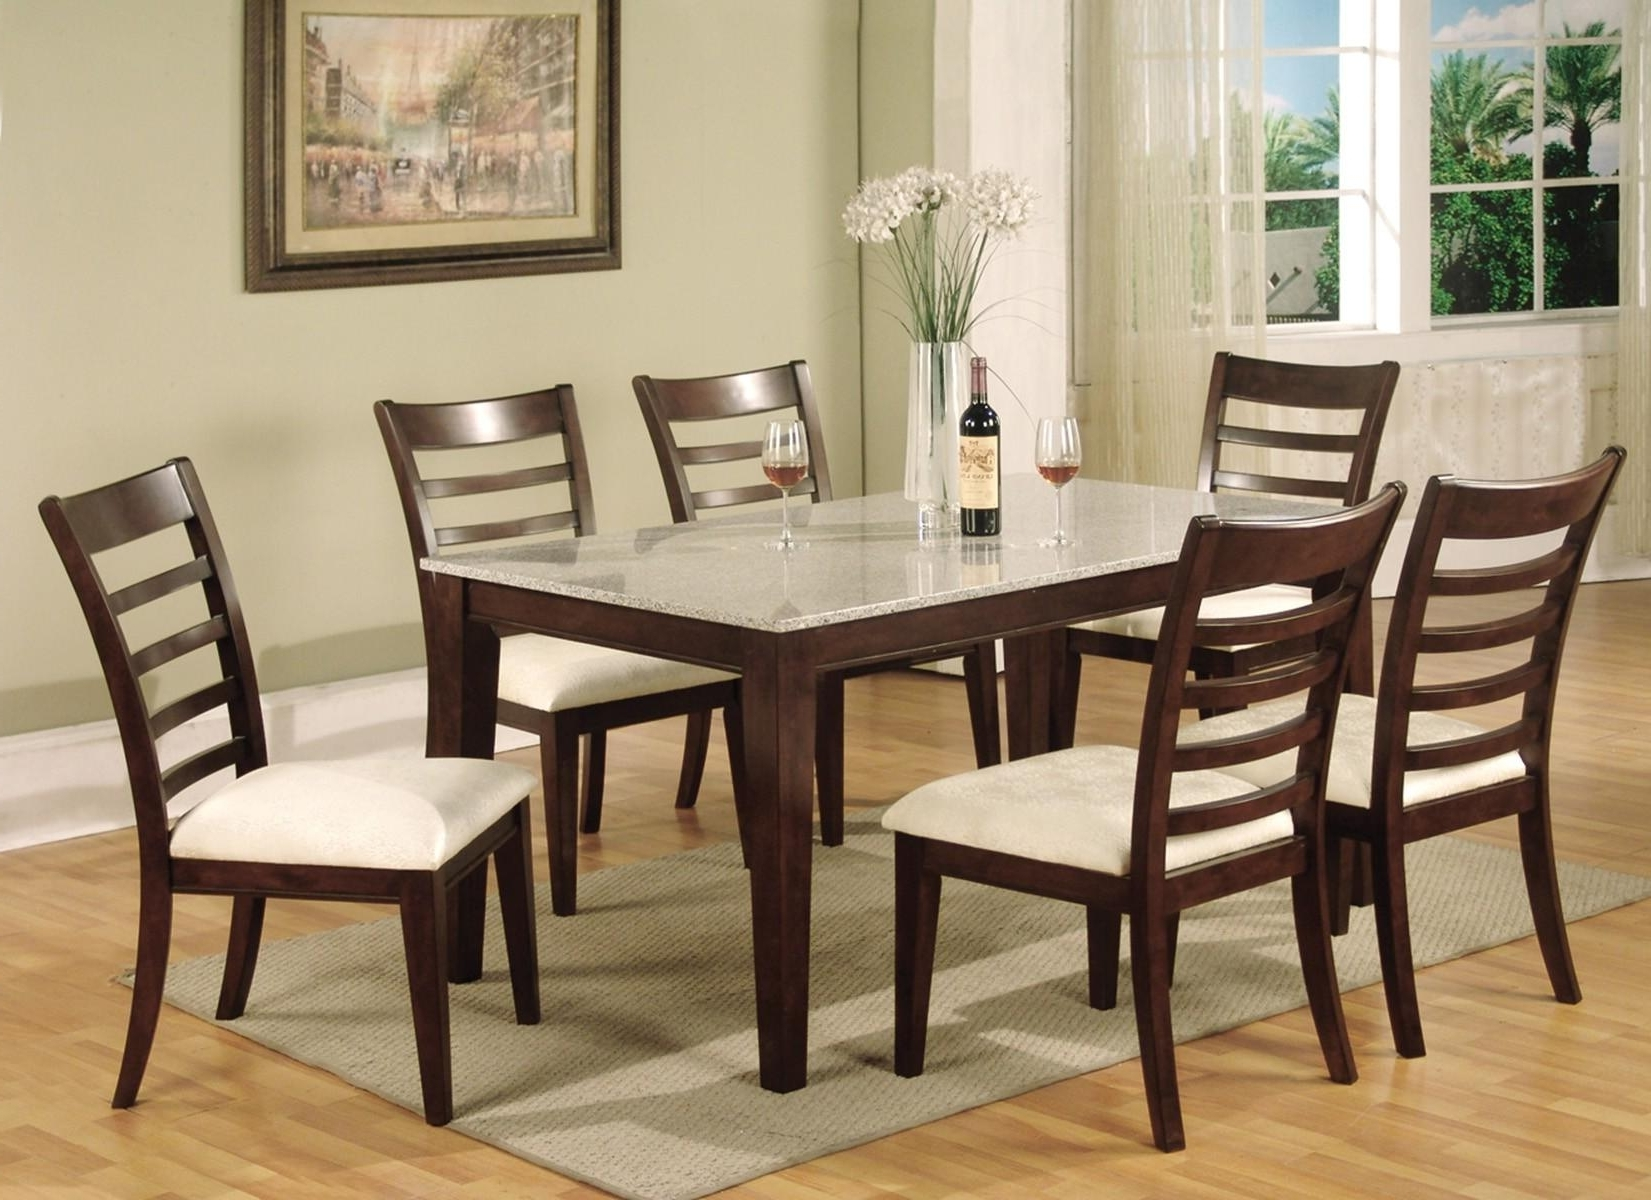 Most Recent Unique Dining Table Sets – Castrophotos Intended For Mallard 7 Piece Extension Dining Sets (View 14 of 25)